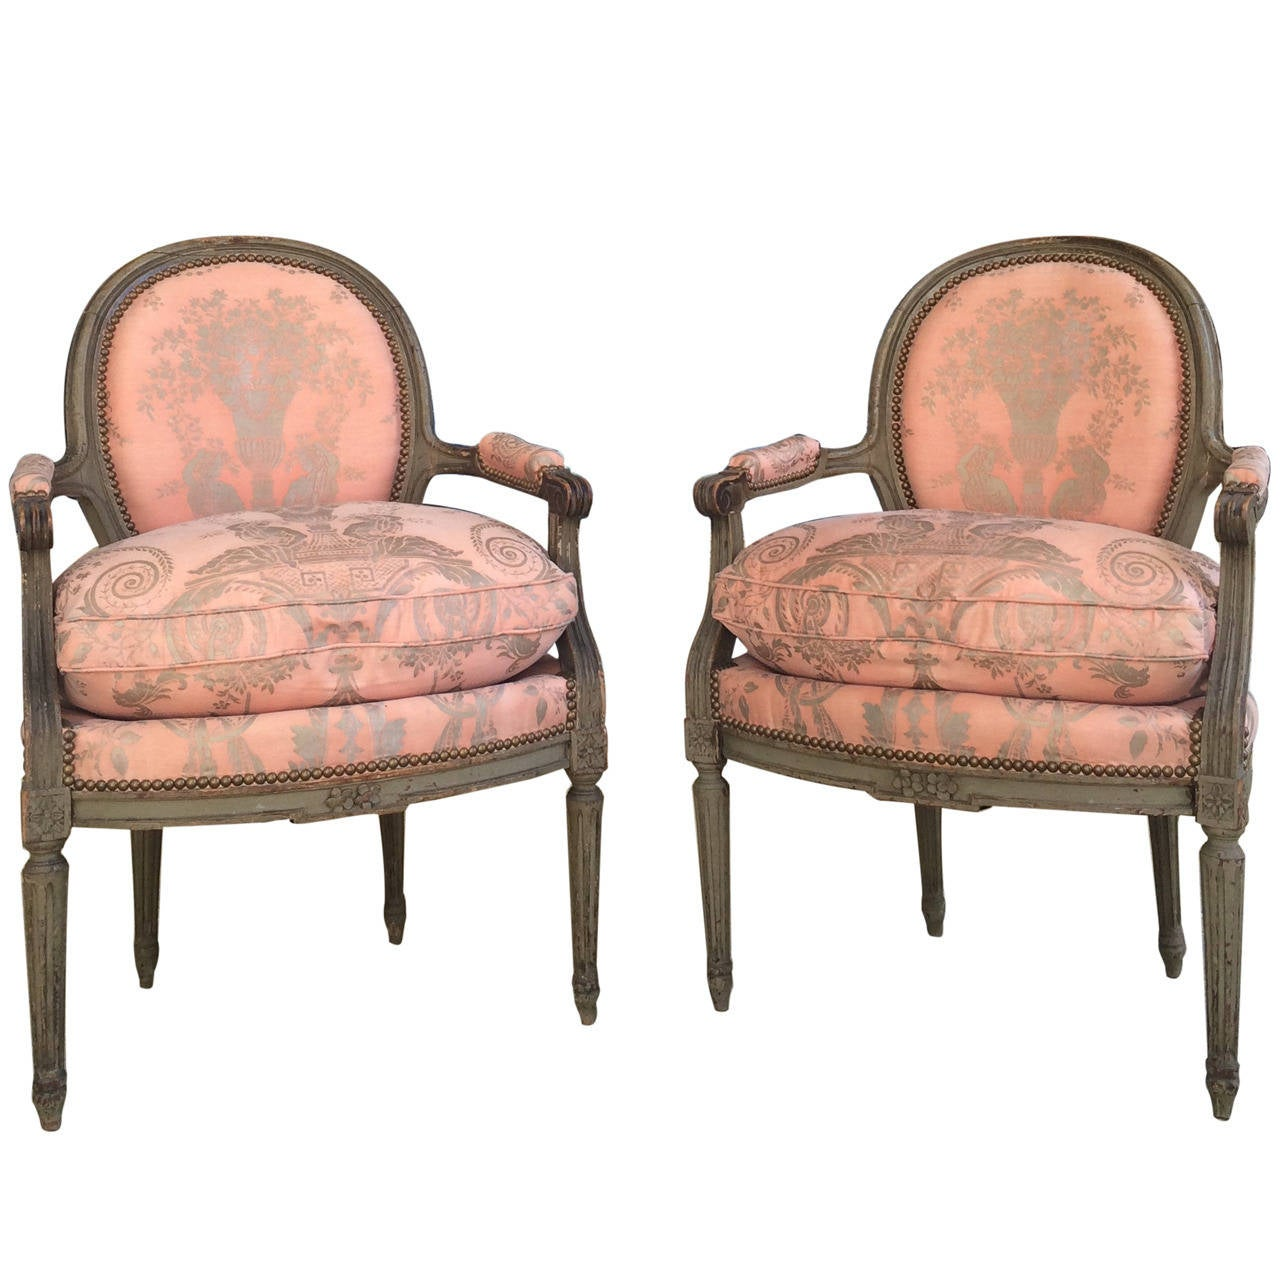 pair of french fauteuils louis xvi style at 1stdibs. Black Bedroom Furniture Sets. Home Design Ideas